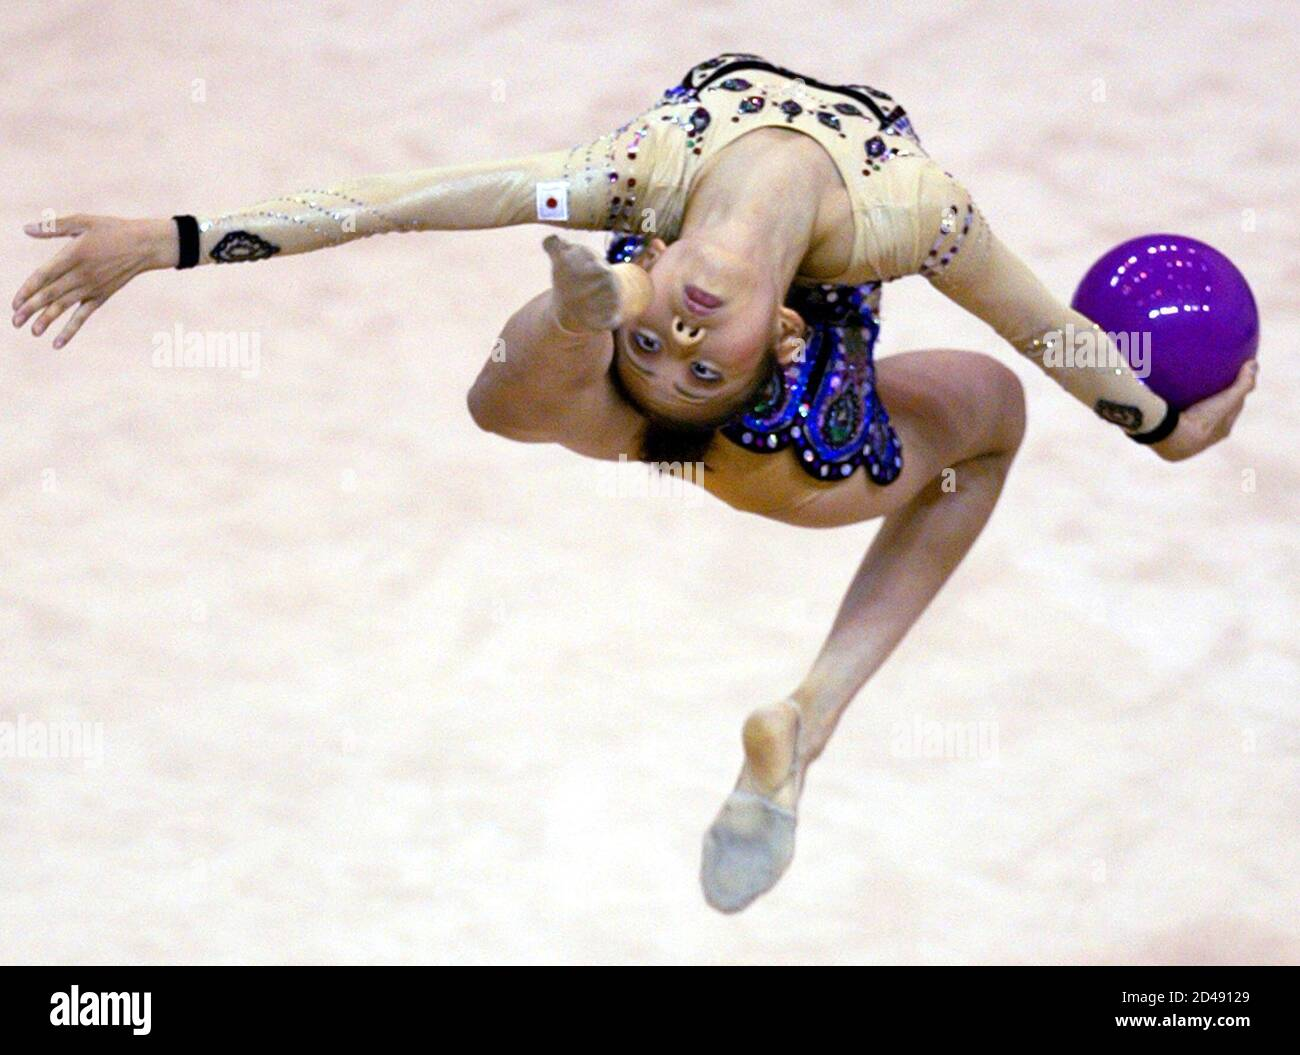 Hayashi Yoshie from Japan performs during the individual all-around rhythmic gymnastics competition at the 22nd Summer Universiade Games in Kyeongju August 23, 2003. REUTERS/Kim Kyung-Hoon  KKH/RCS Stock Photo